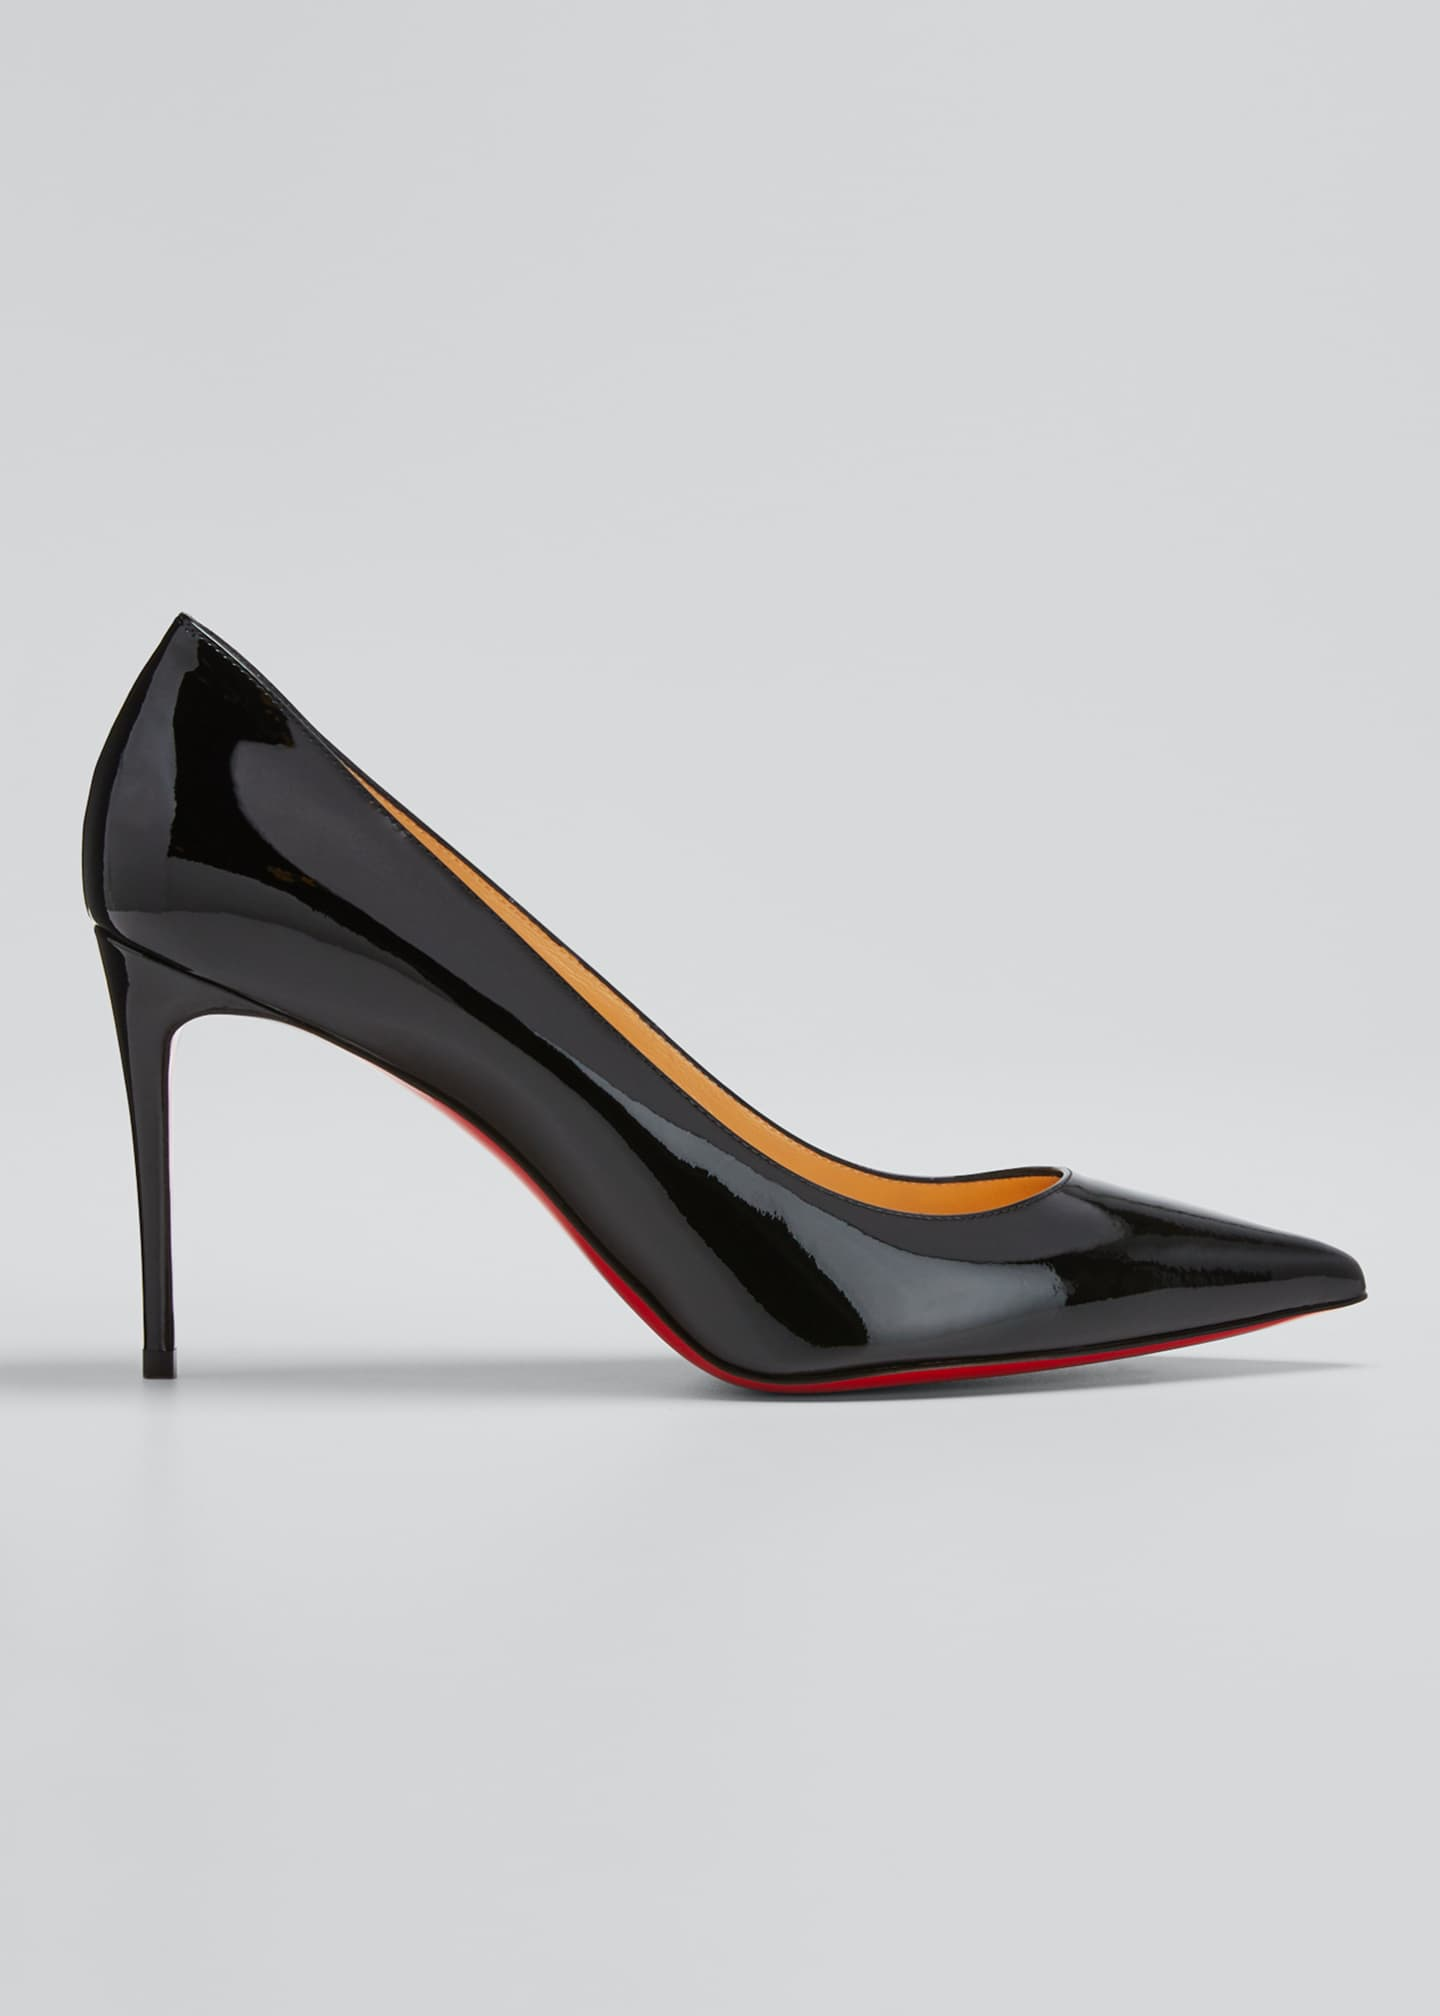 Image 1 of 3: Decollete 85mm Patent Leather Red Sole Pump